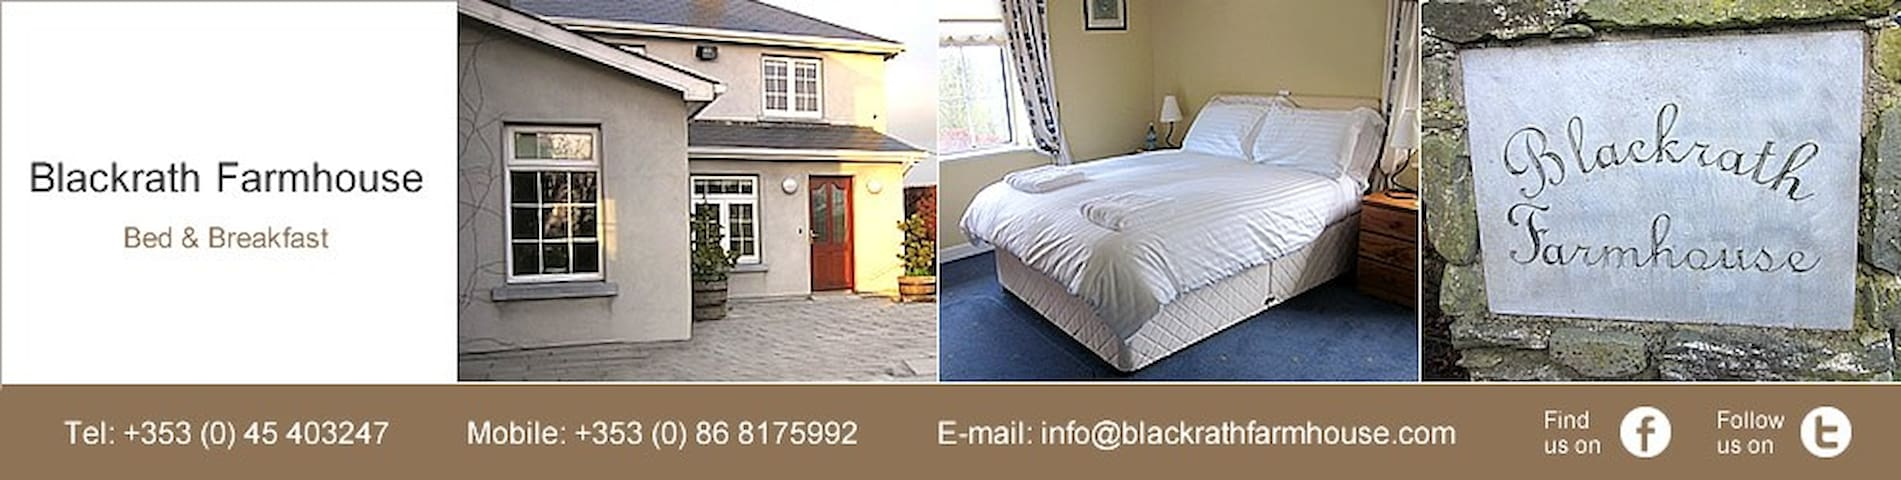 Blackrath Farmhouse Co Kildare - Ballymount Colbinstown - Pousada